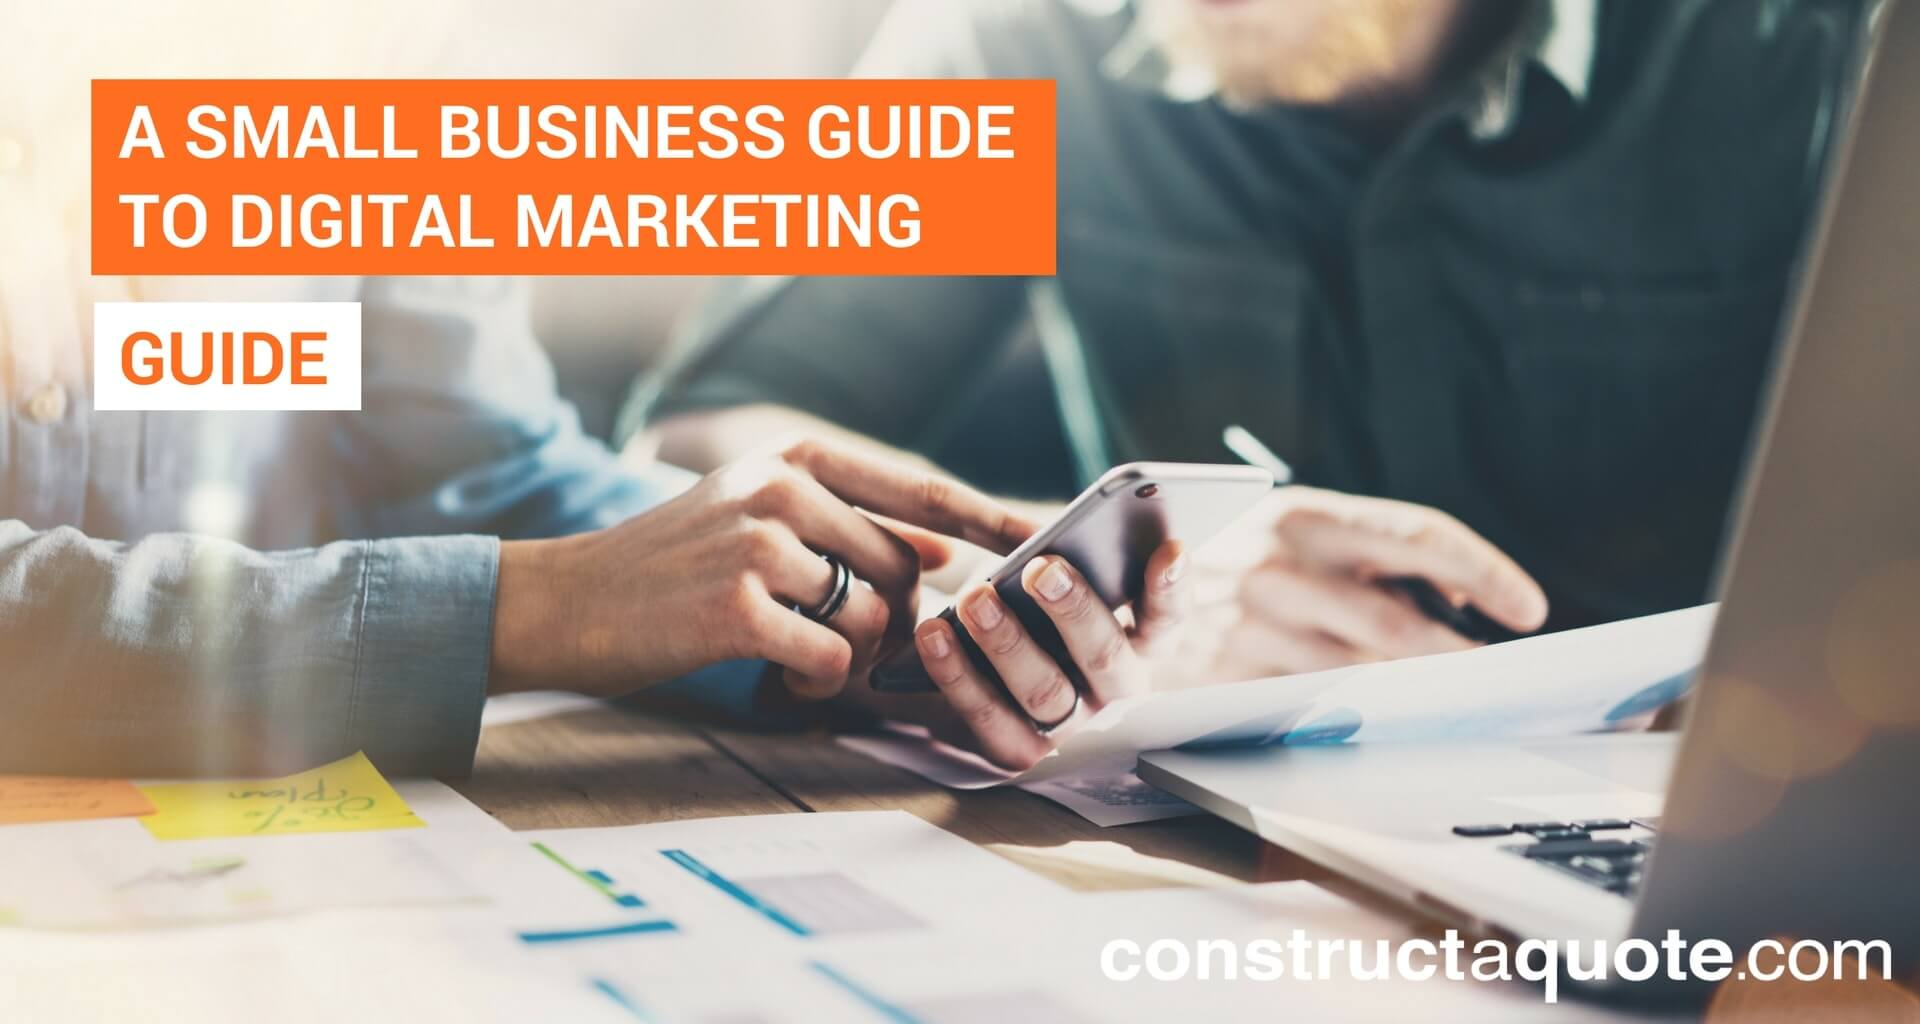 A small business guide to digital marketing